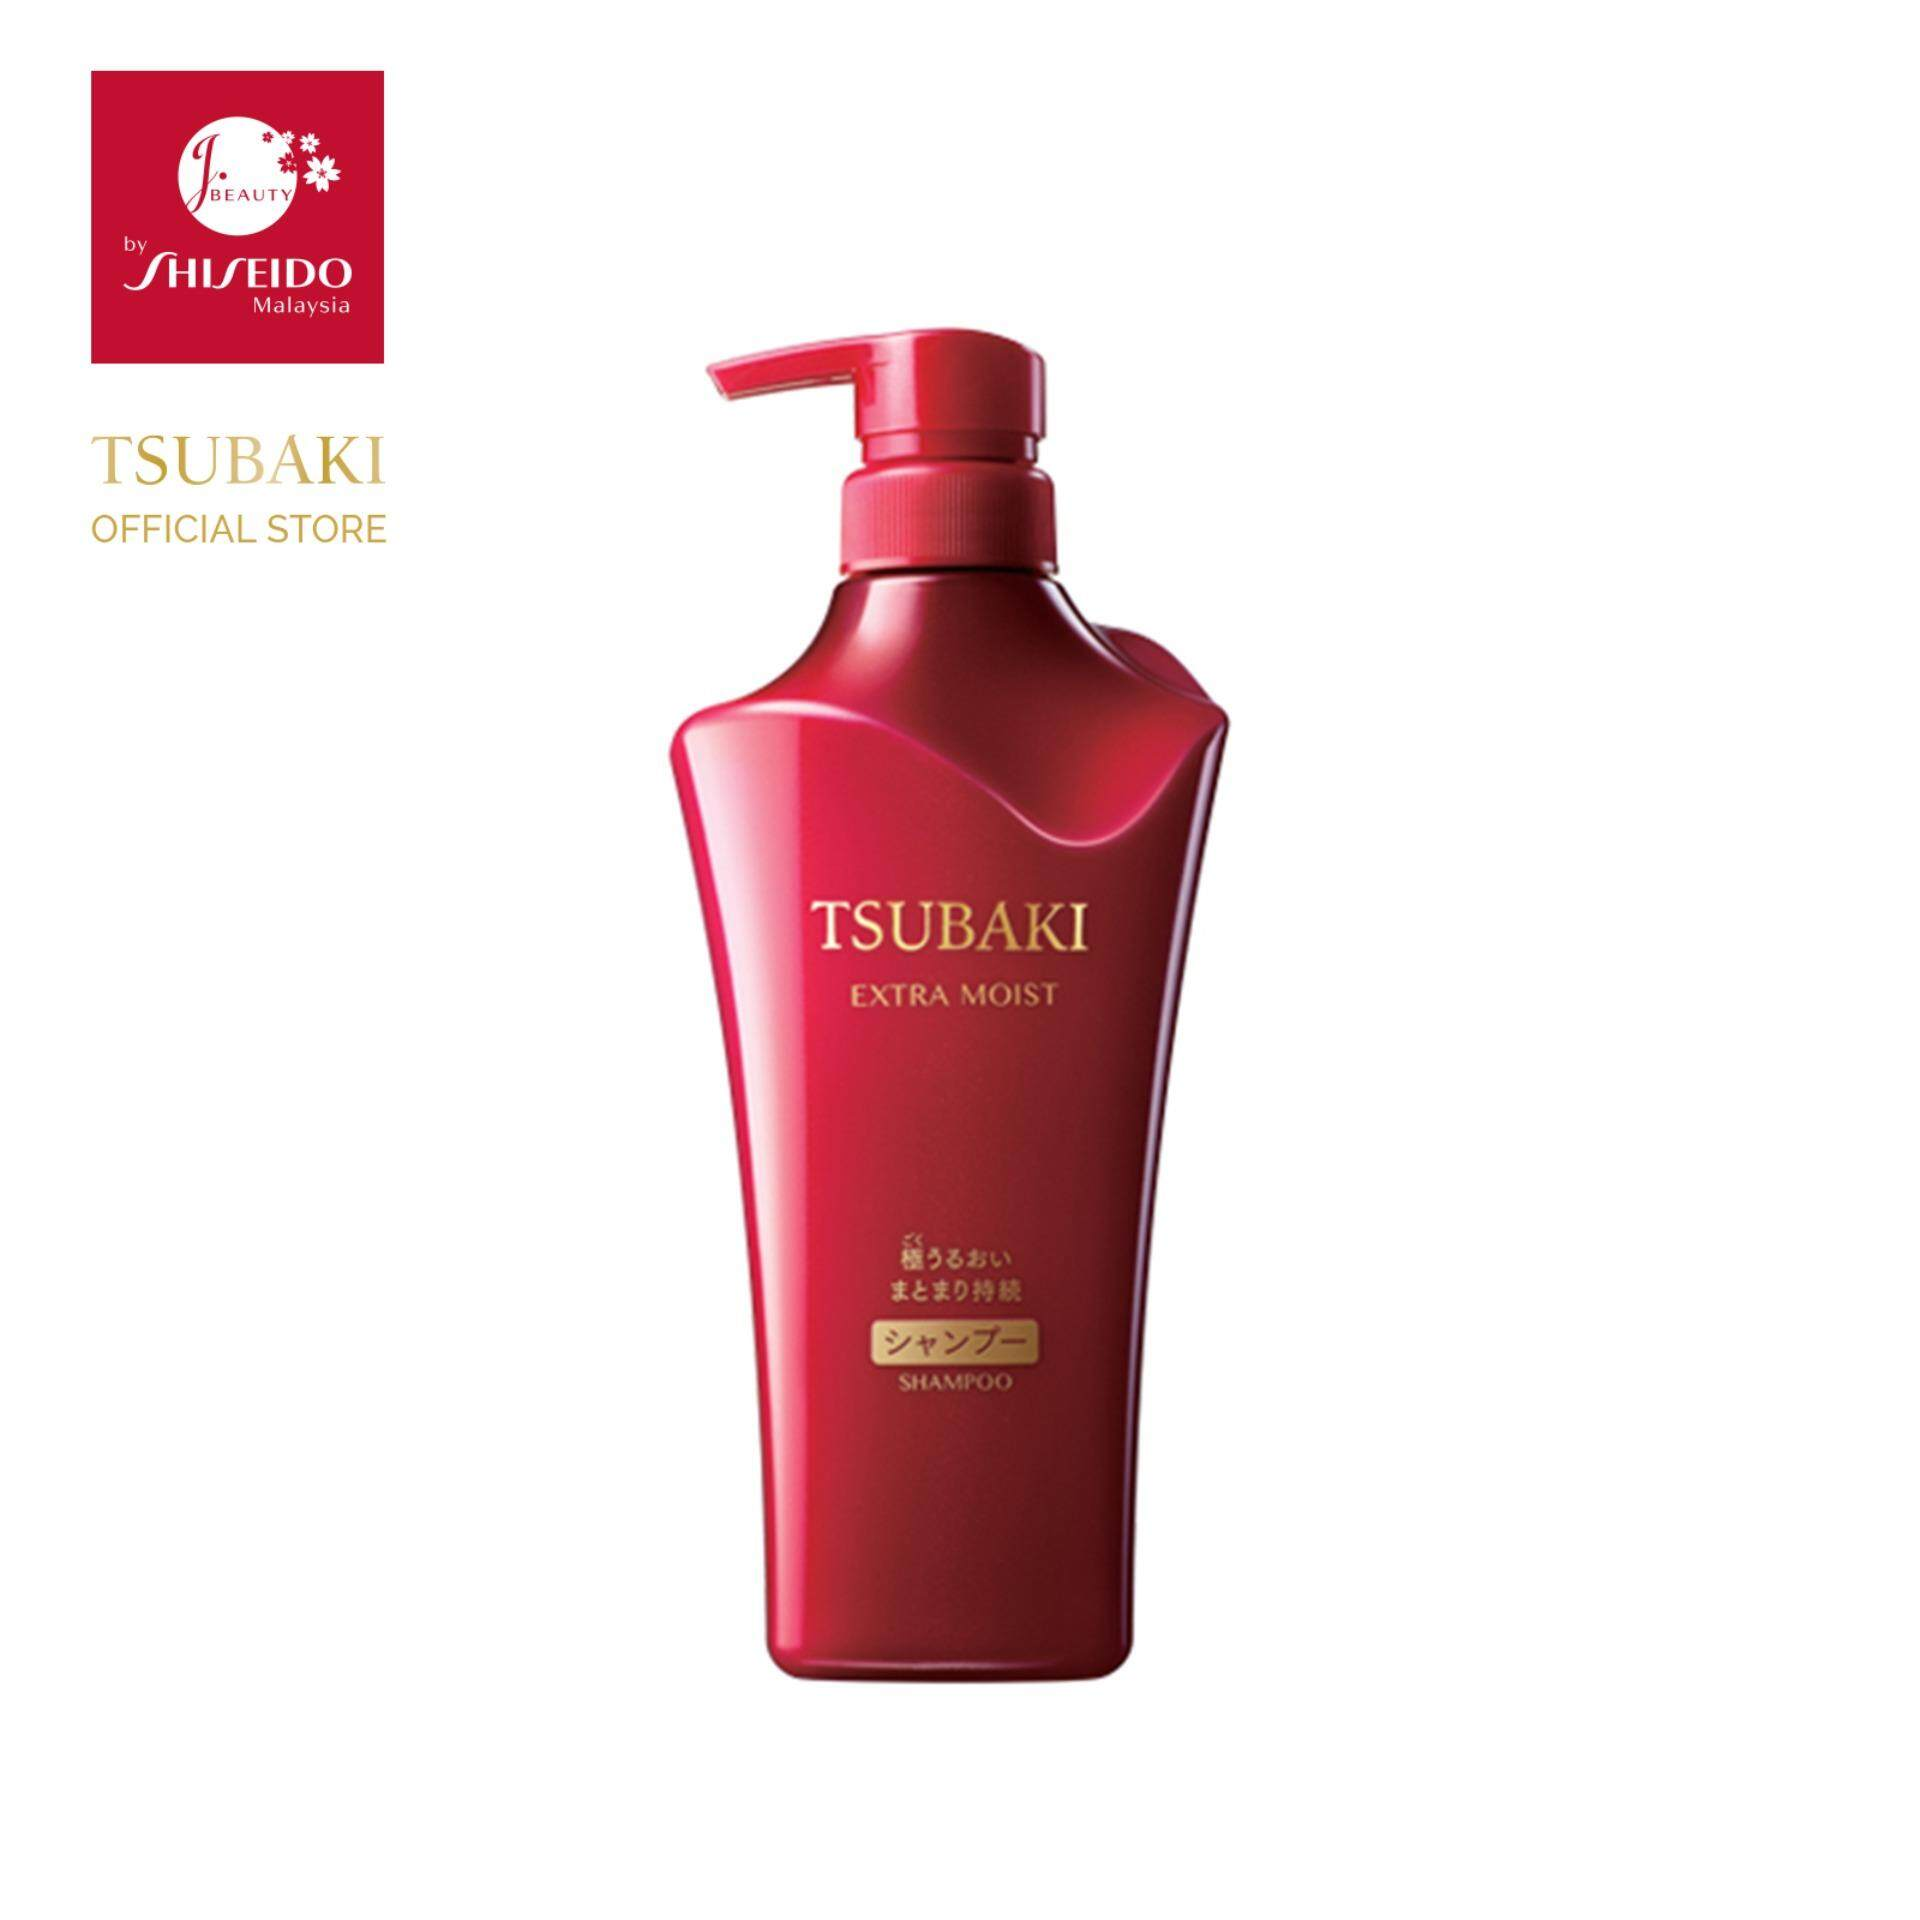 Hair Care Products With Best Online Price In Malaysia Makarizo Texture Shampoo 250ml Tsubaki Extra Moist Conditioner 500ml